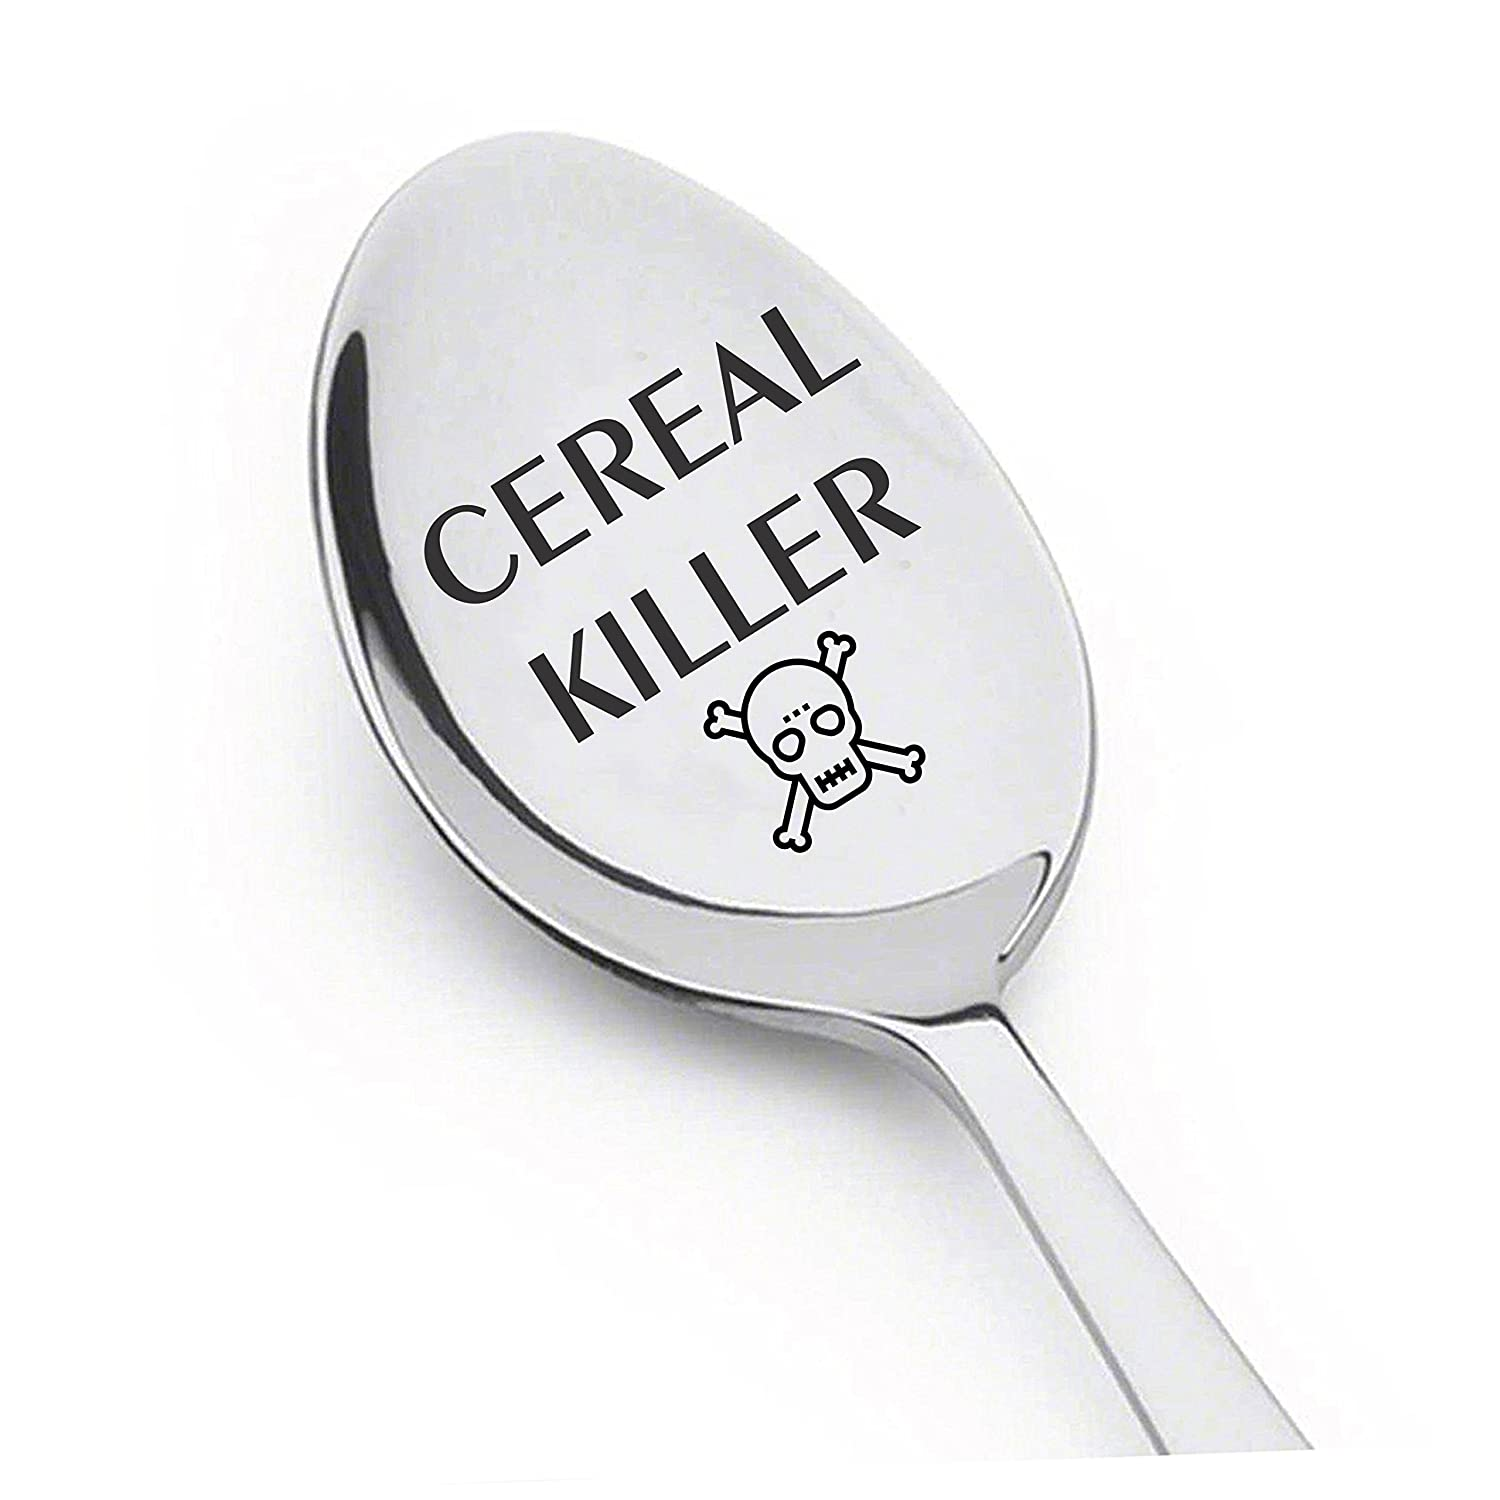 Cereal Killer Spoon - Perfect Cereal Lover Gift-Cereal Spoon Best Teenager Gifts On The Market - Crafted by LYF Collections